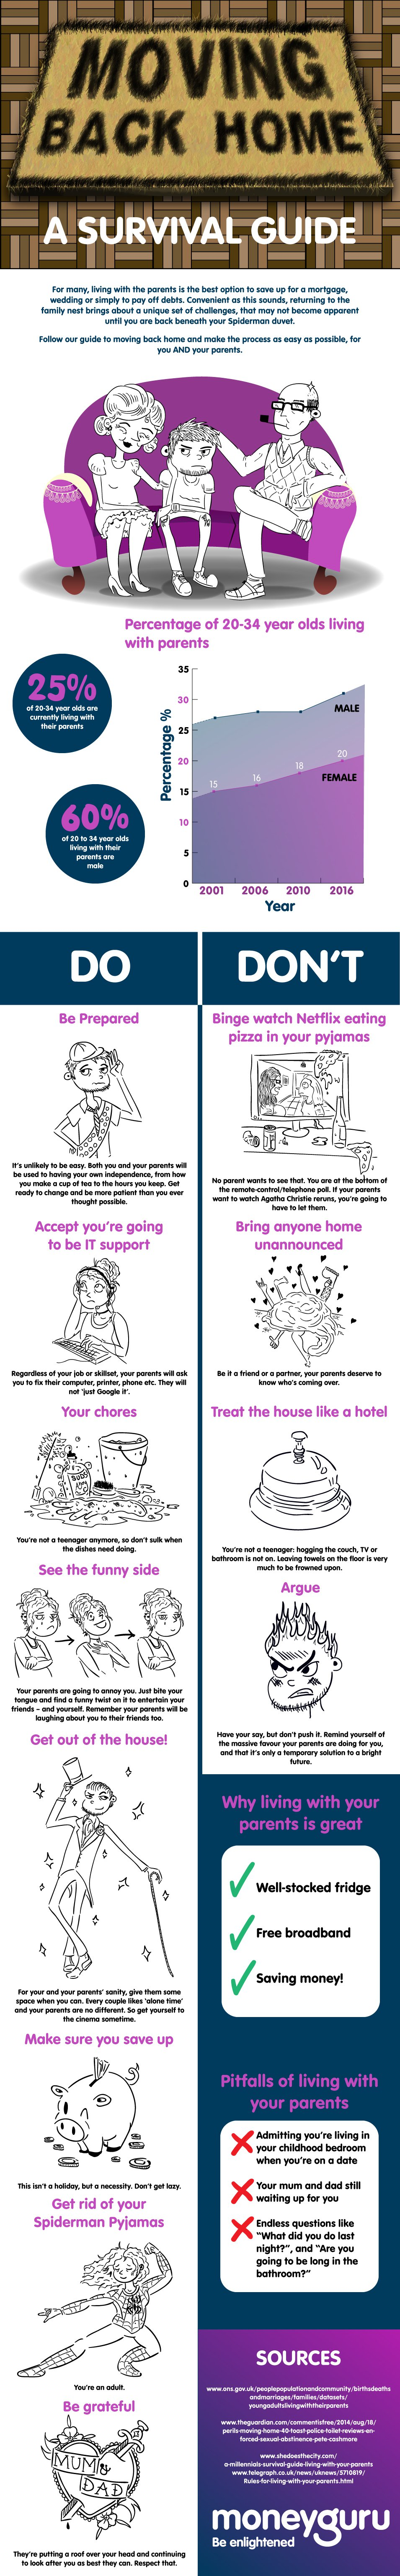 How to Make Moving Back Home Work: A Survival Guide - Infographic